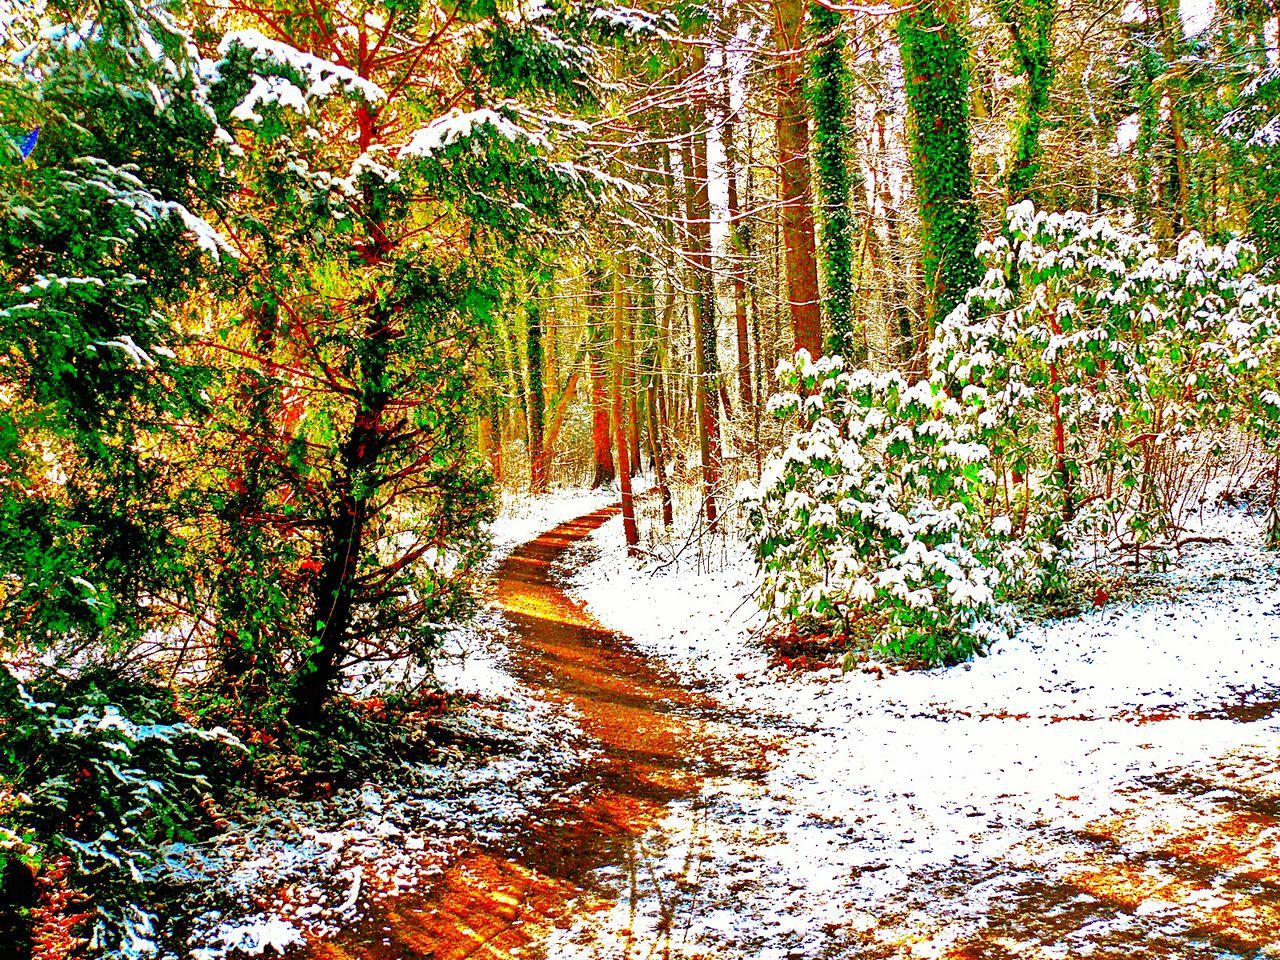 Heavy Edits Wood Park Snow Way Trees Snow On The Ground Snow On Trees Colorful Colorexplosion Going For A Walk Germany GERMANY🇩🇪DEUTSCHERLAND@ Winter Panasonic Lumix